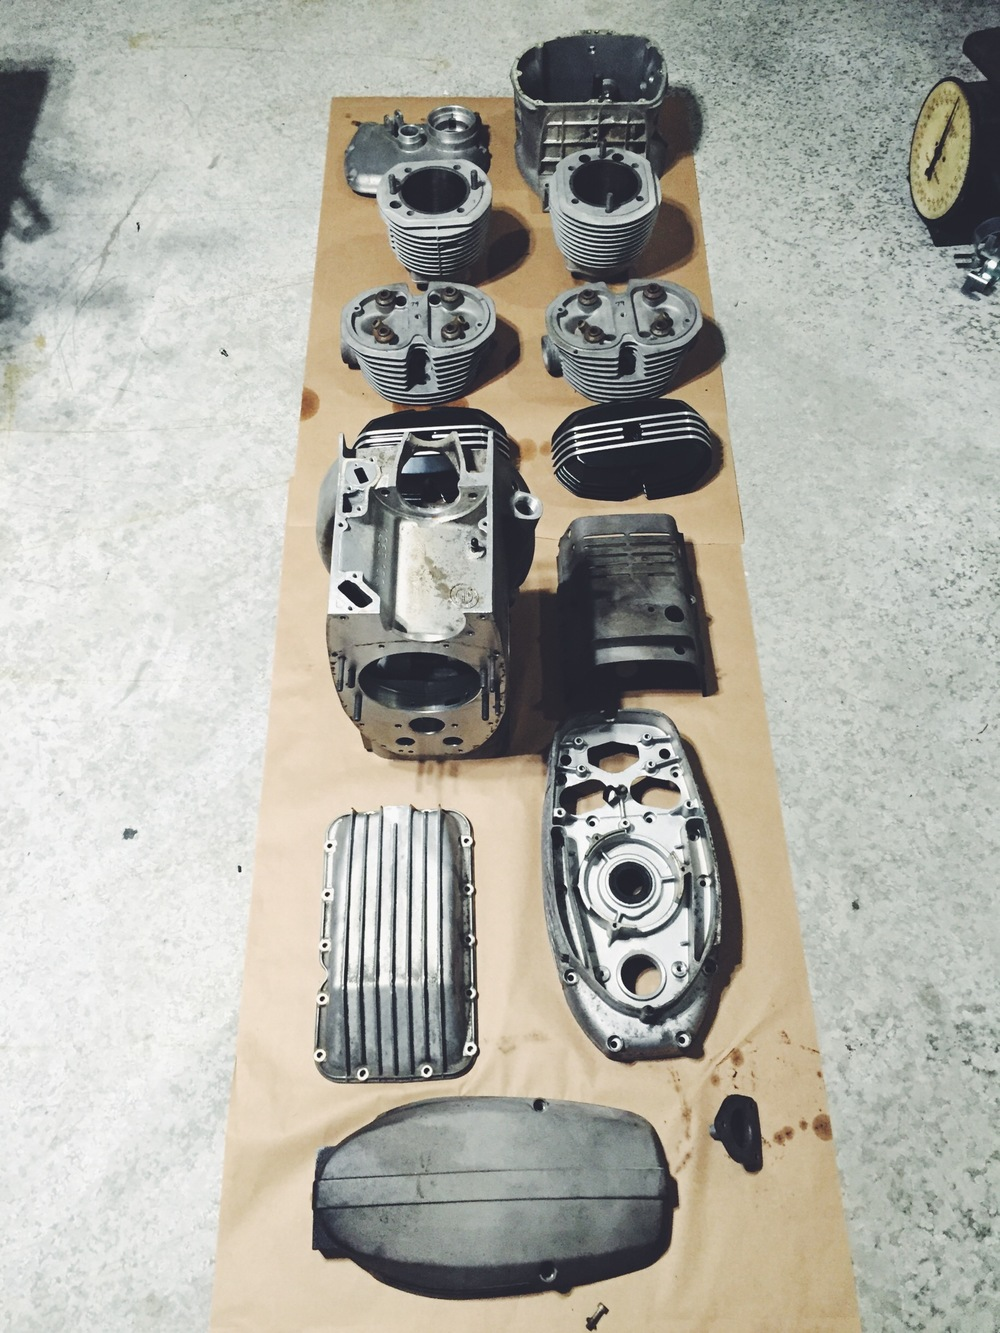 The CA Tuned R100 motor and gearbox are finally gutted out. I've already received a quote from a powder-coating company that specializes in coating motors. A lot of prep work will be handled by these guys. I look forward to see how these will come back.